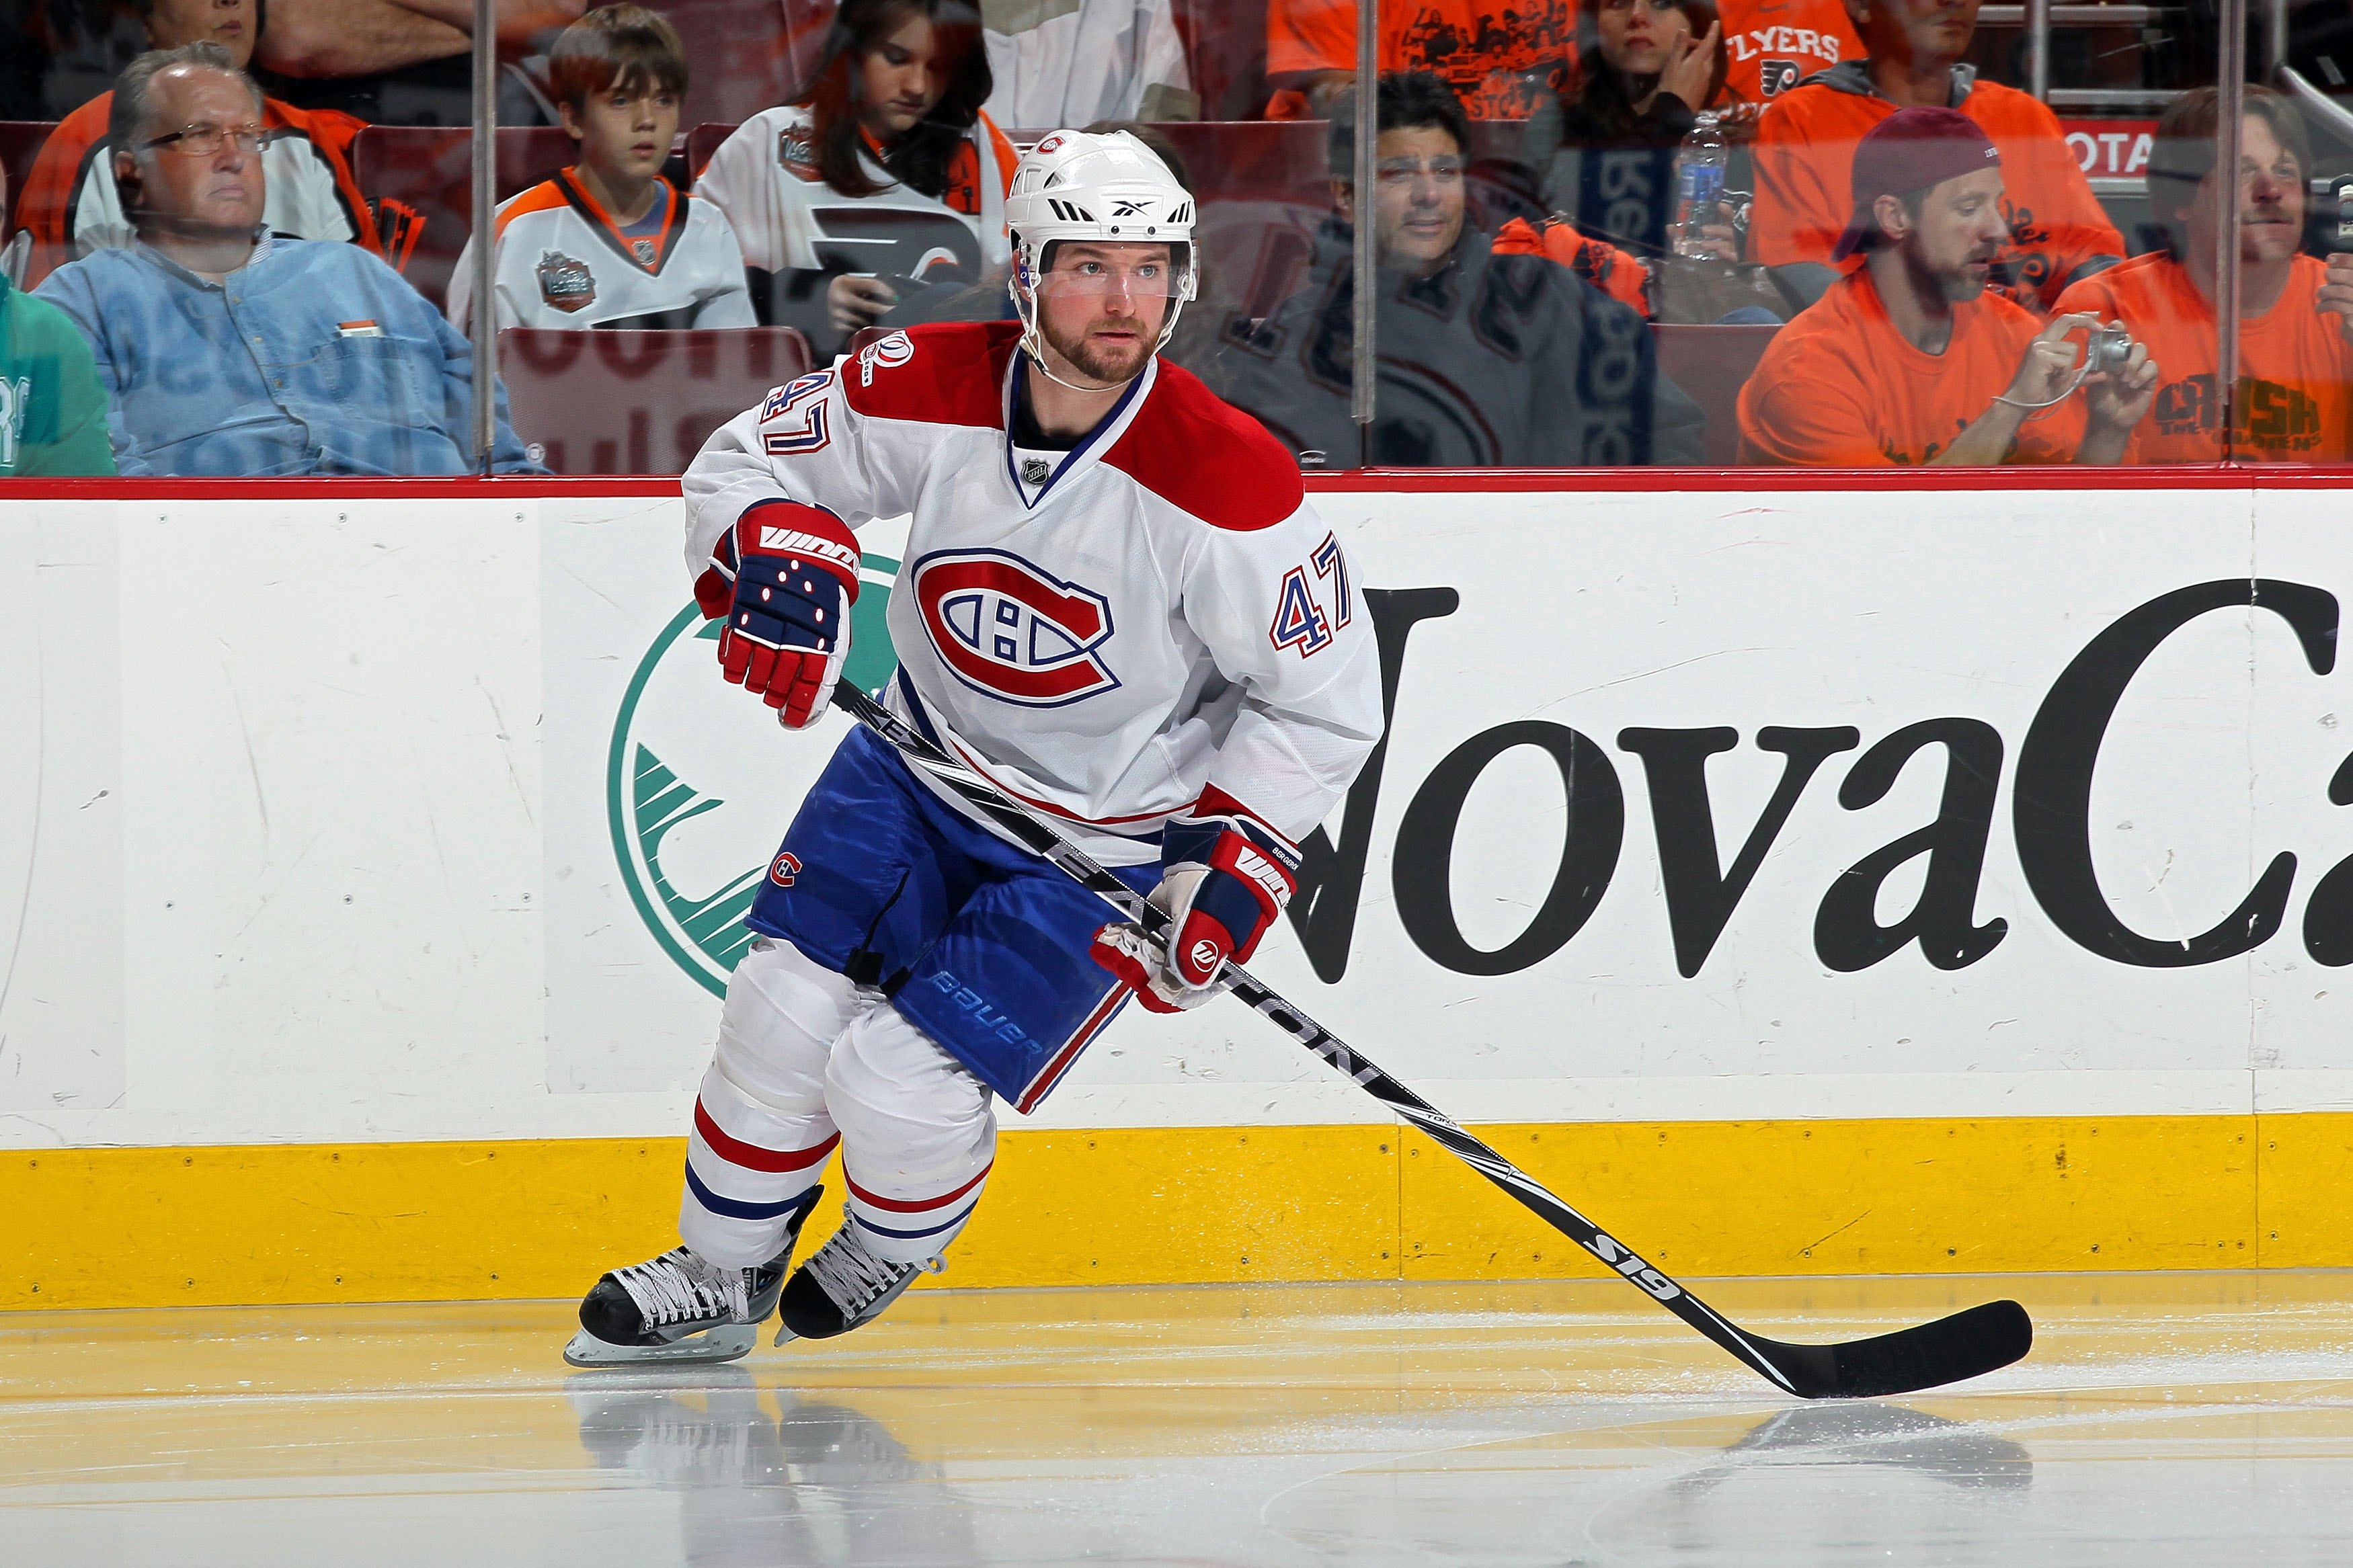 Marc-Andre Bergeron, an affordable solution to any teams with power play issues.